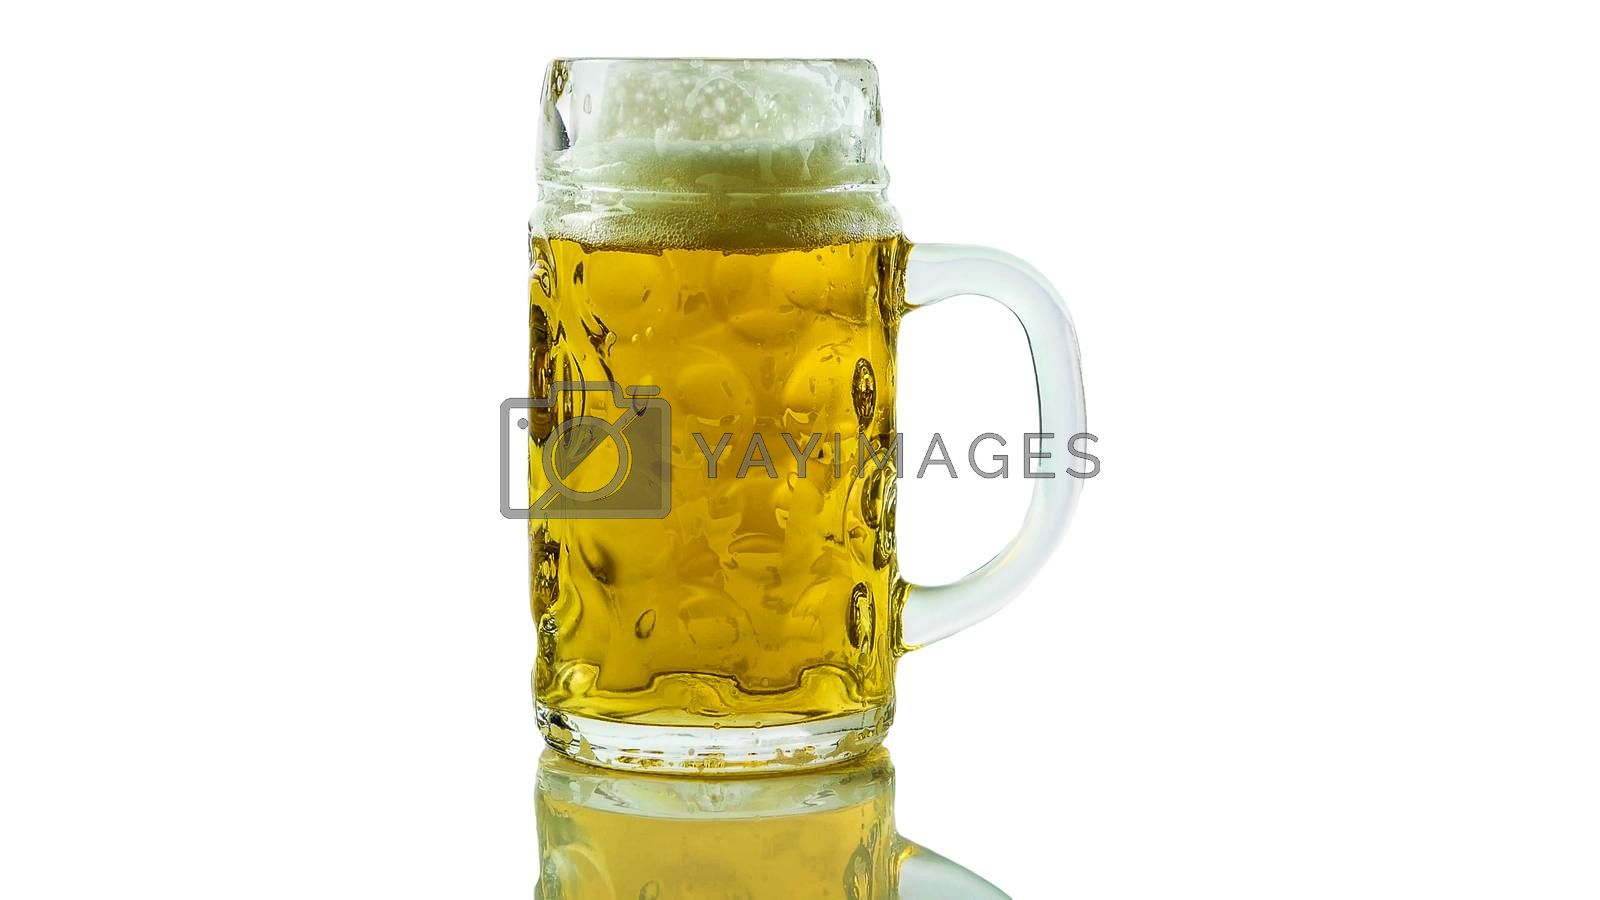 Royalty free image of Glass of light beer isolated on white background,draft beer close up,fresh alcoholic beer drink in glass. by Andriii_Klapkoo